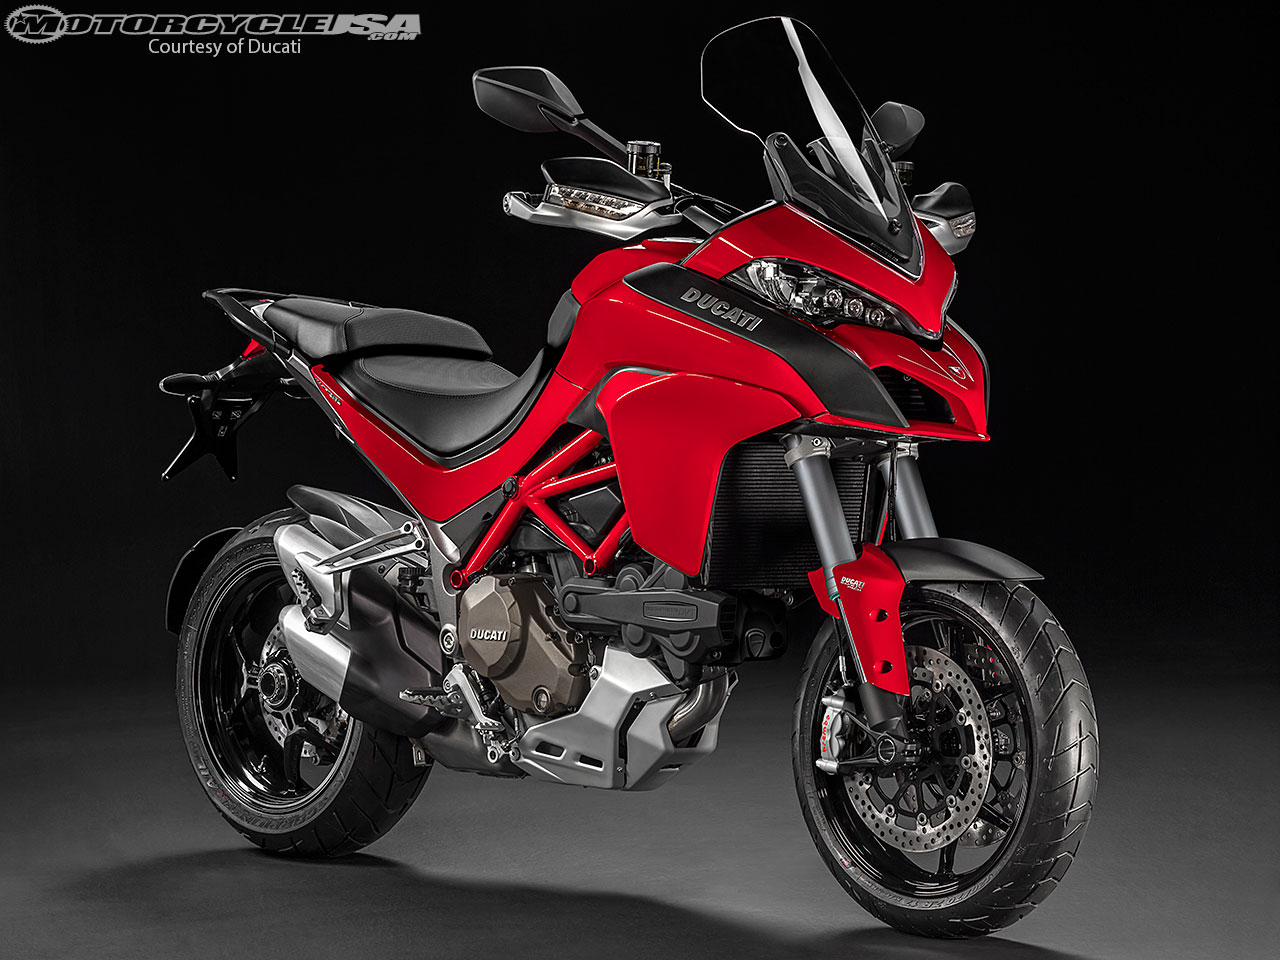 Ducati Multistrada 1200 2015 wallpapers #13189